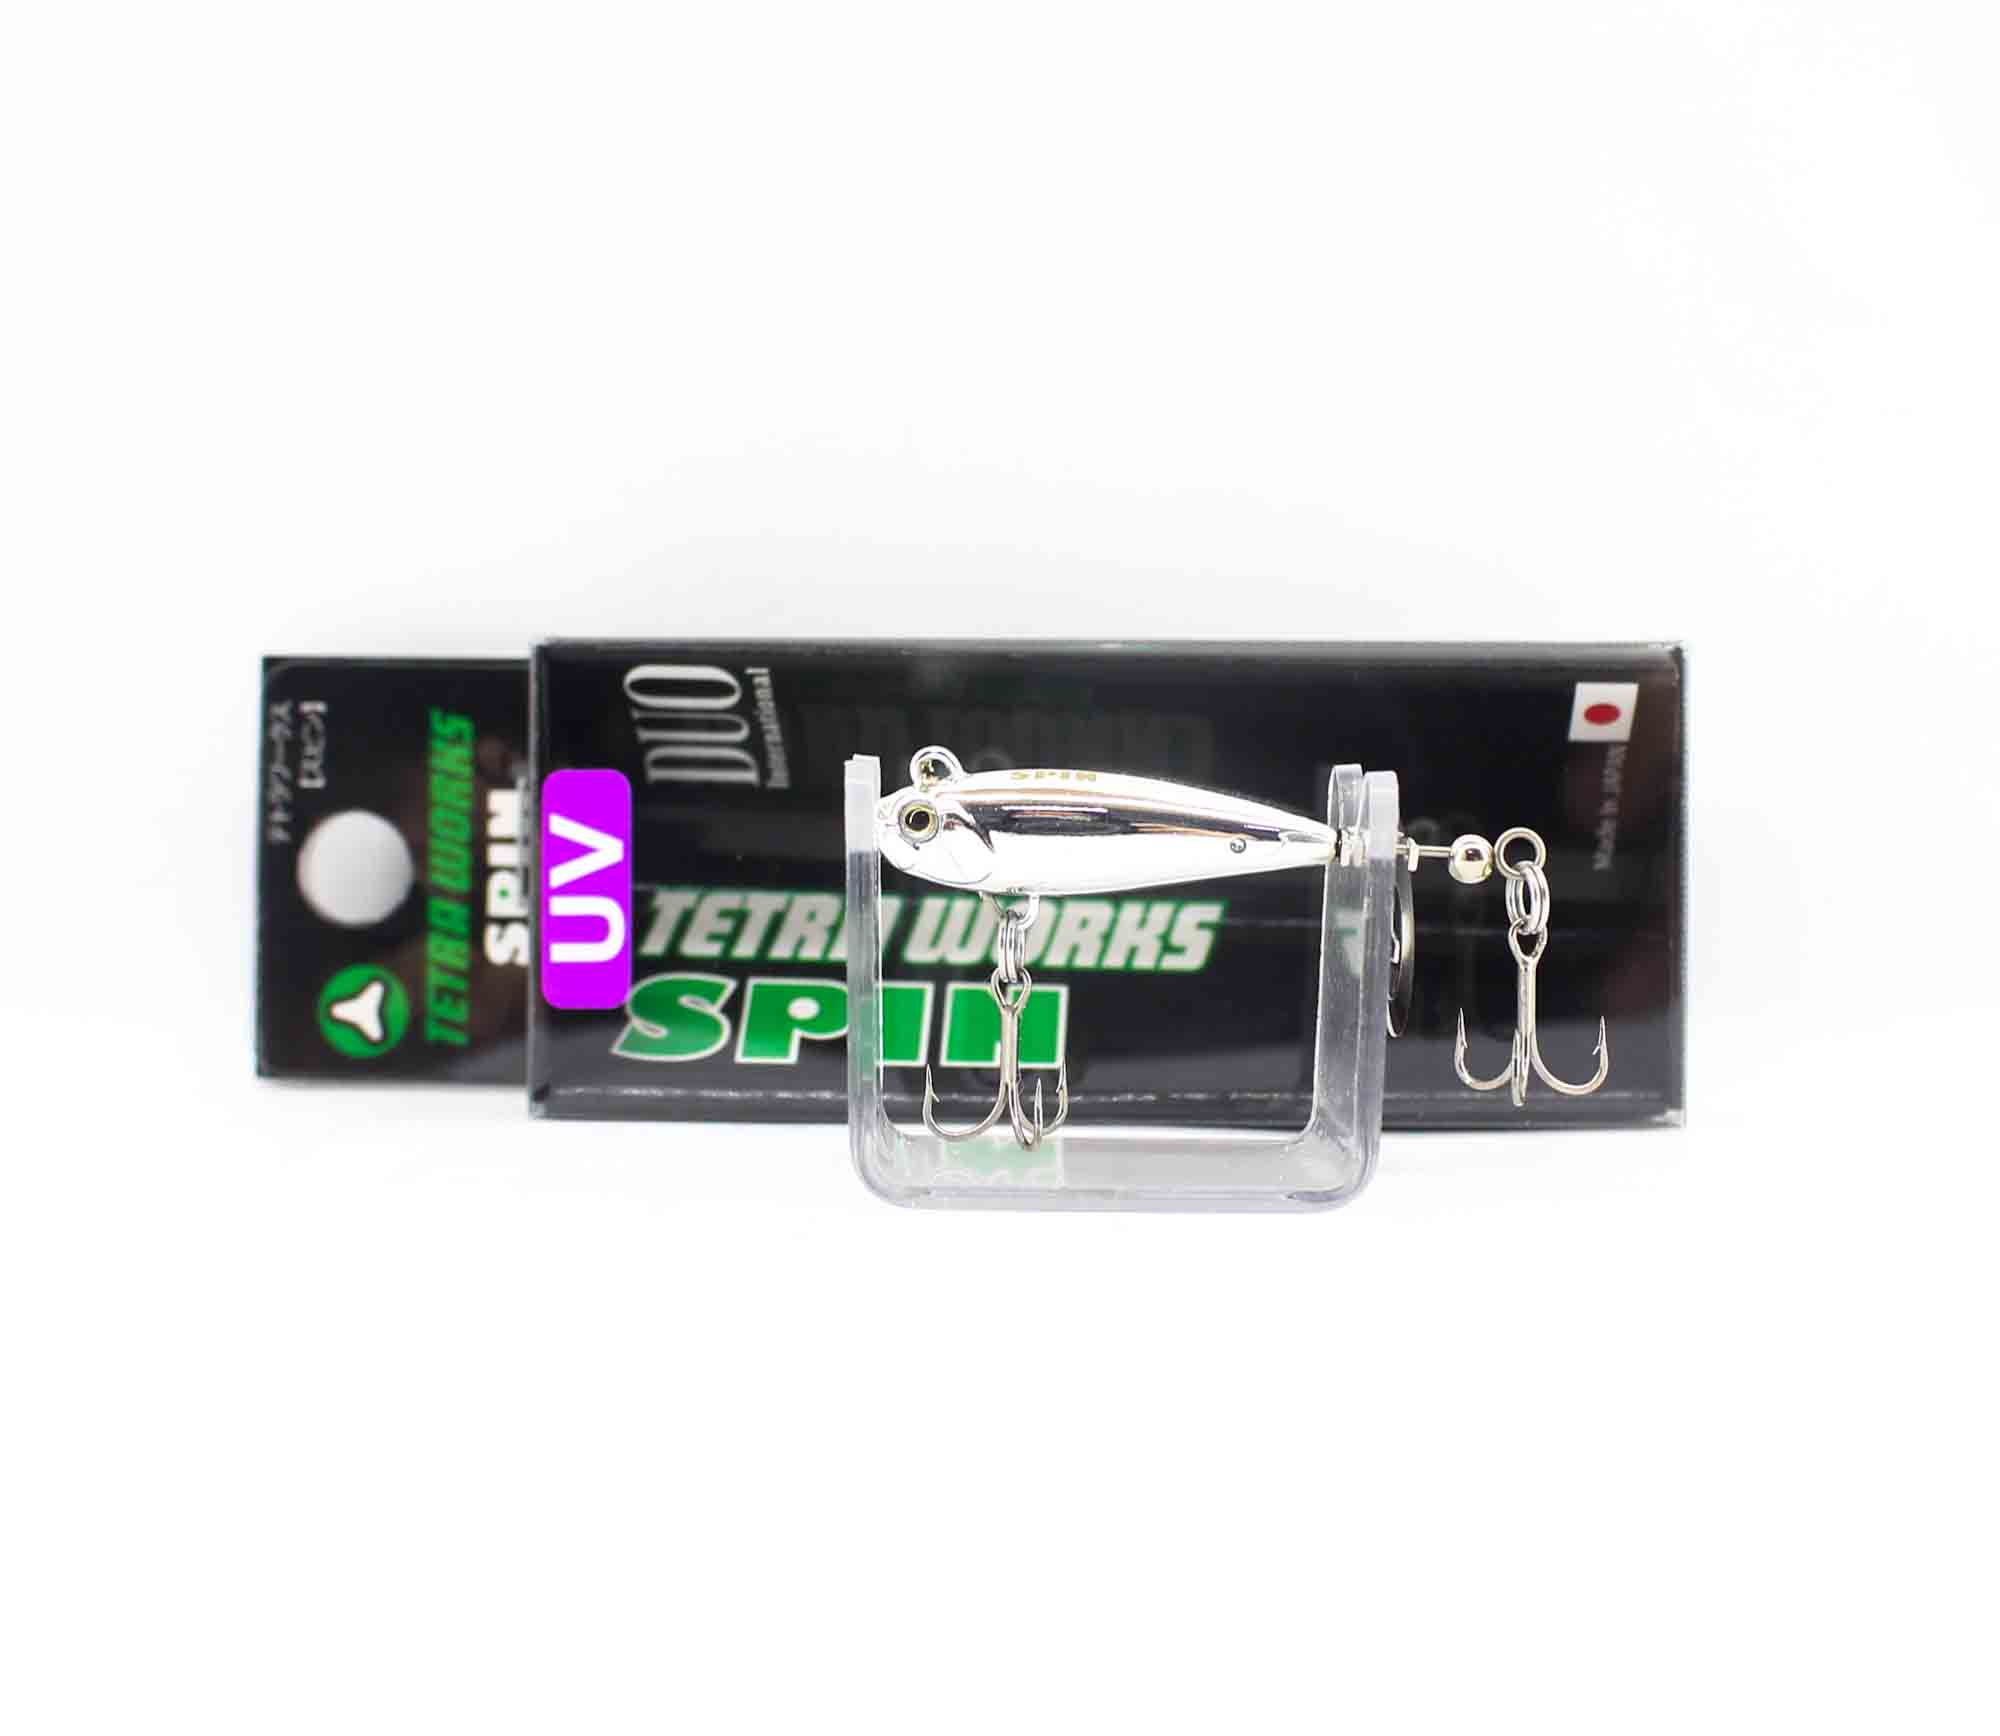 Duo Tetra Works Spin 28 mm 5 grams Sinking Lure MCC0522 (2918)